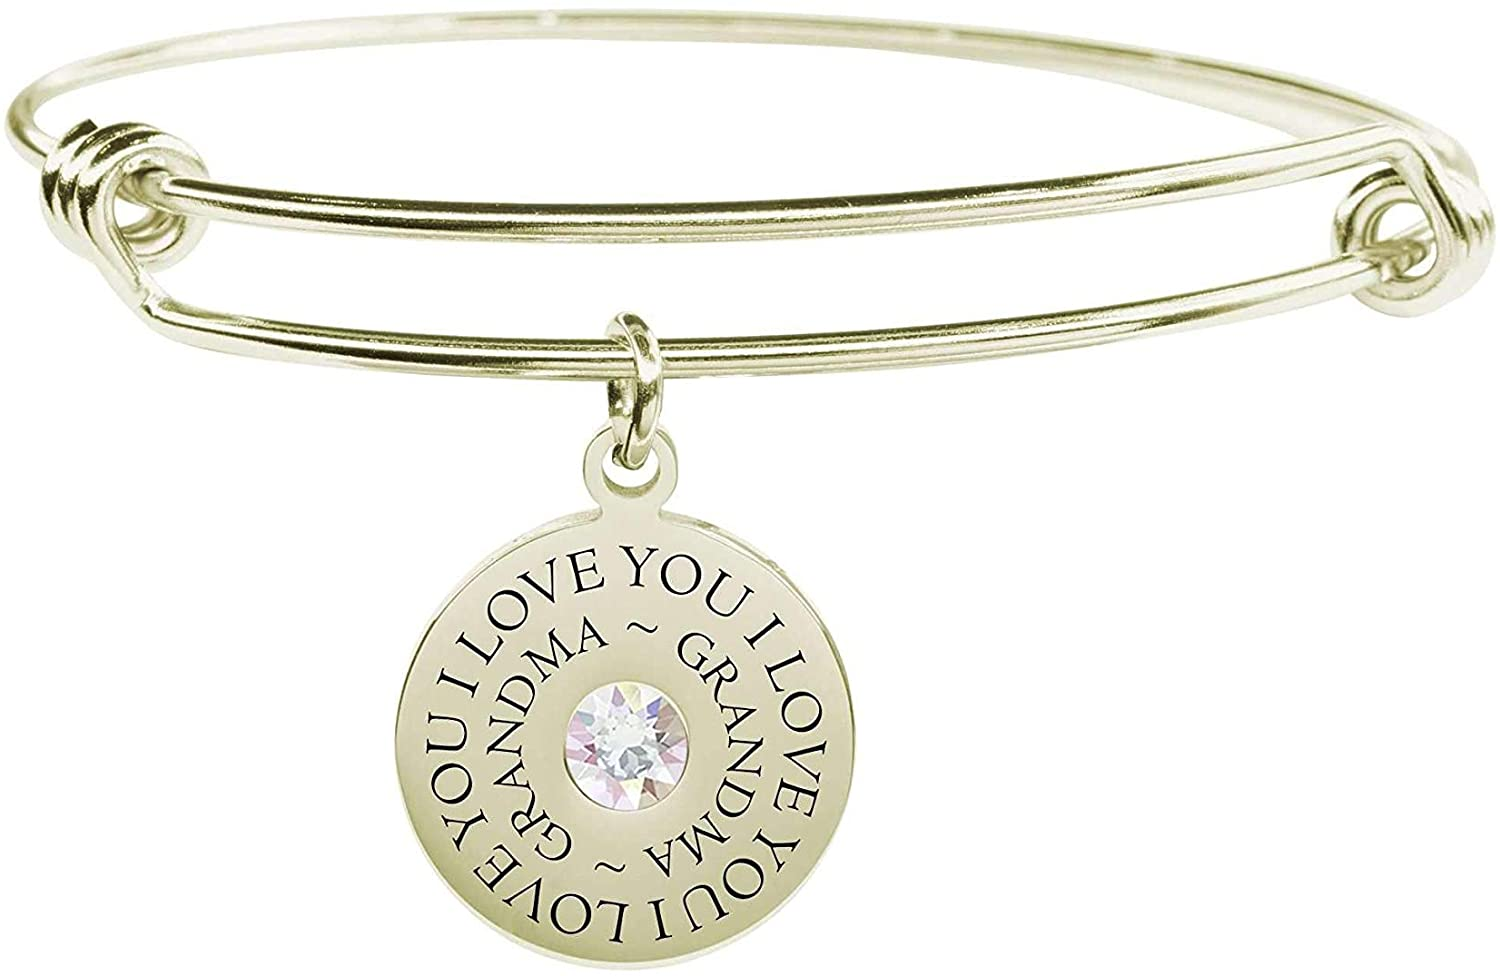 Pink Box Round Inspirational Bangle Made with Crystals from Swarovski Grandma - Gold